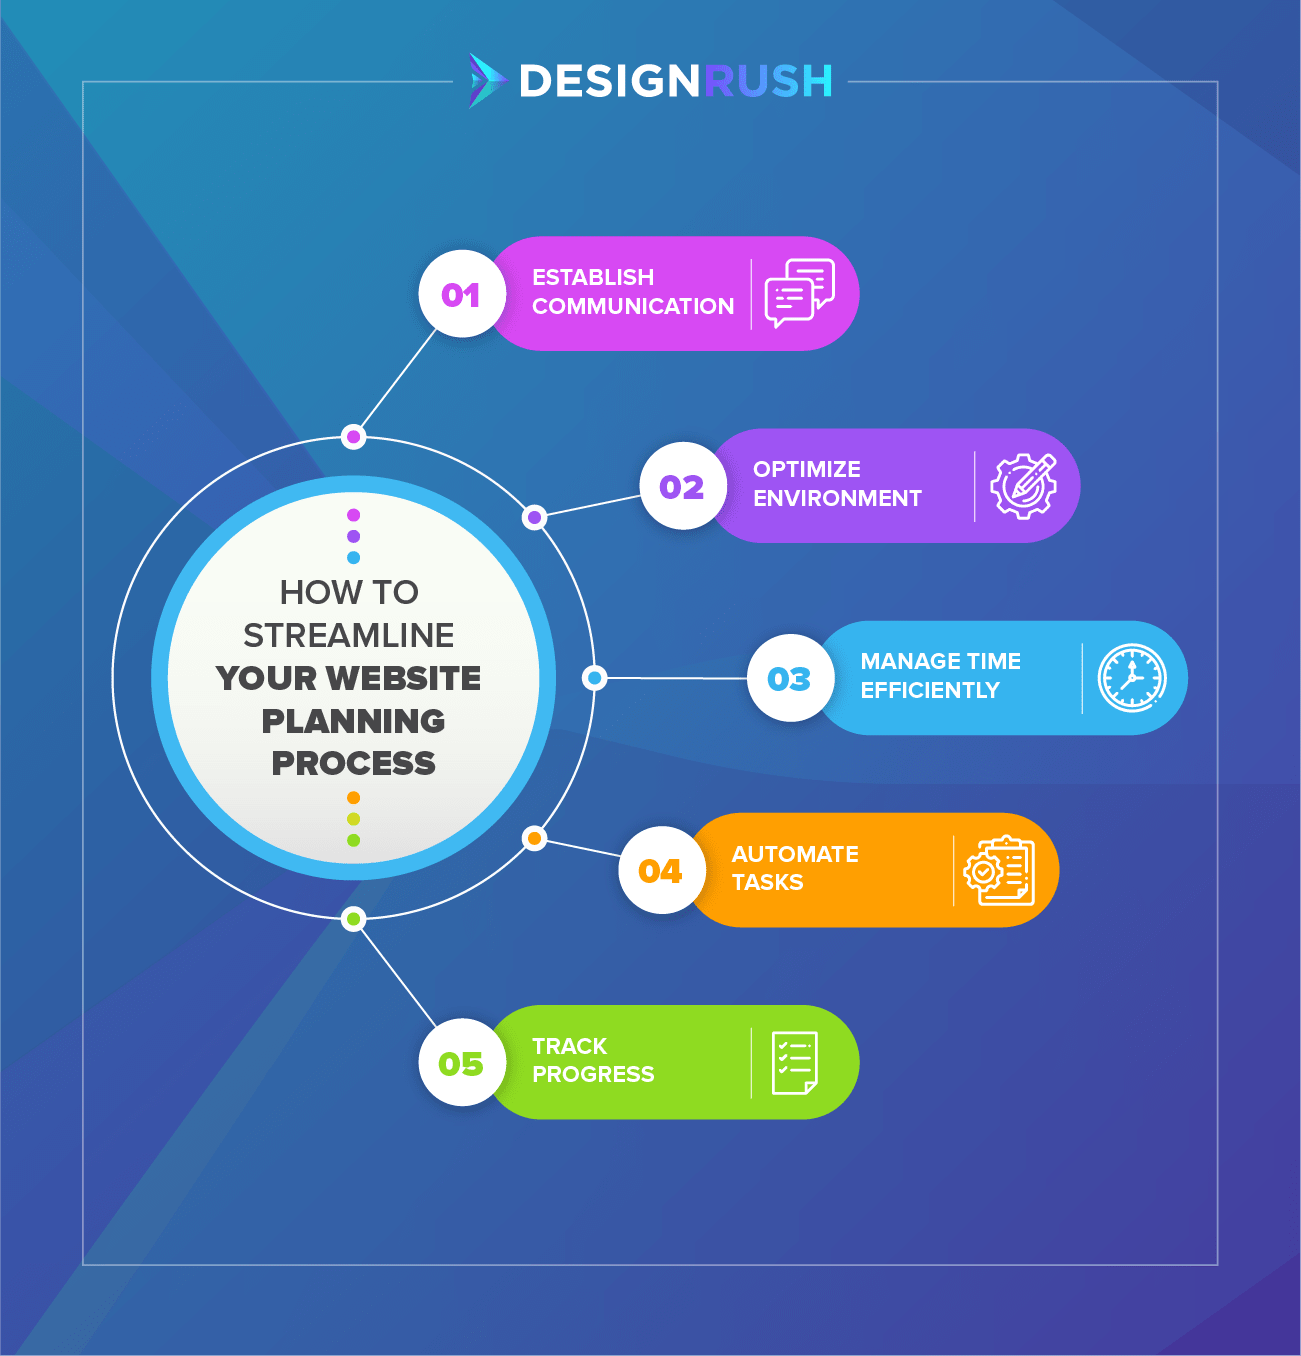 How to streamline website planning process